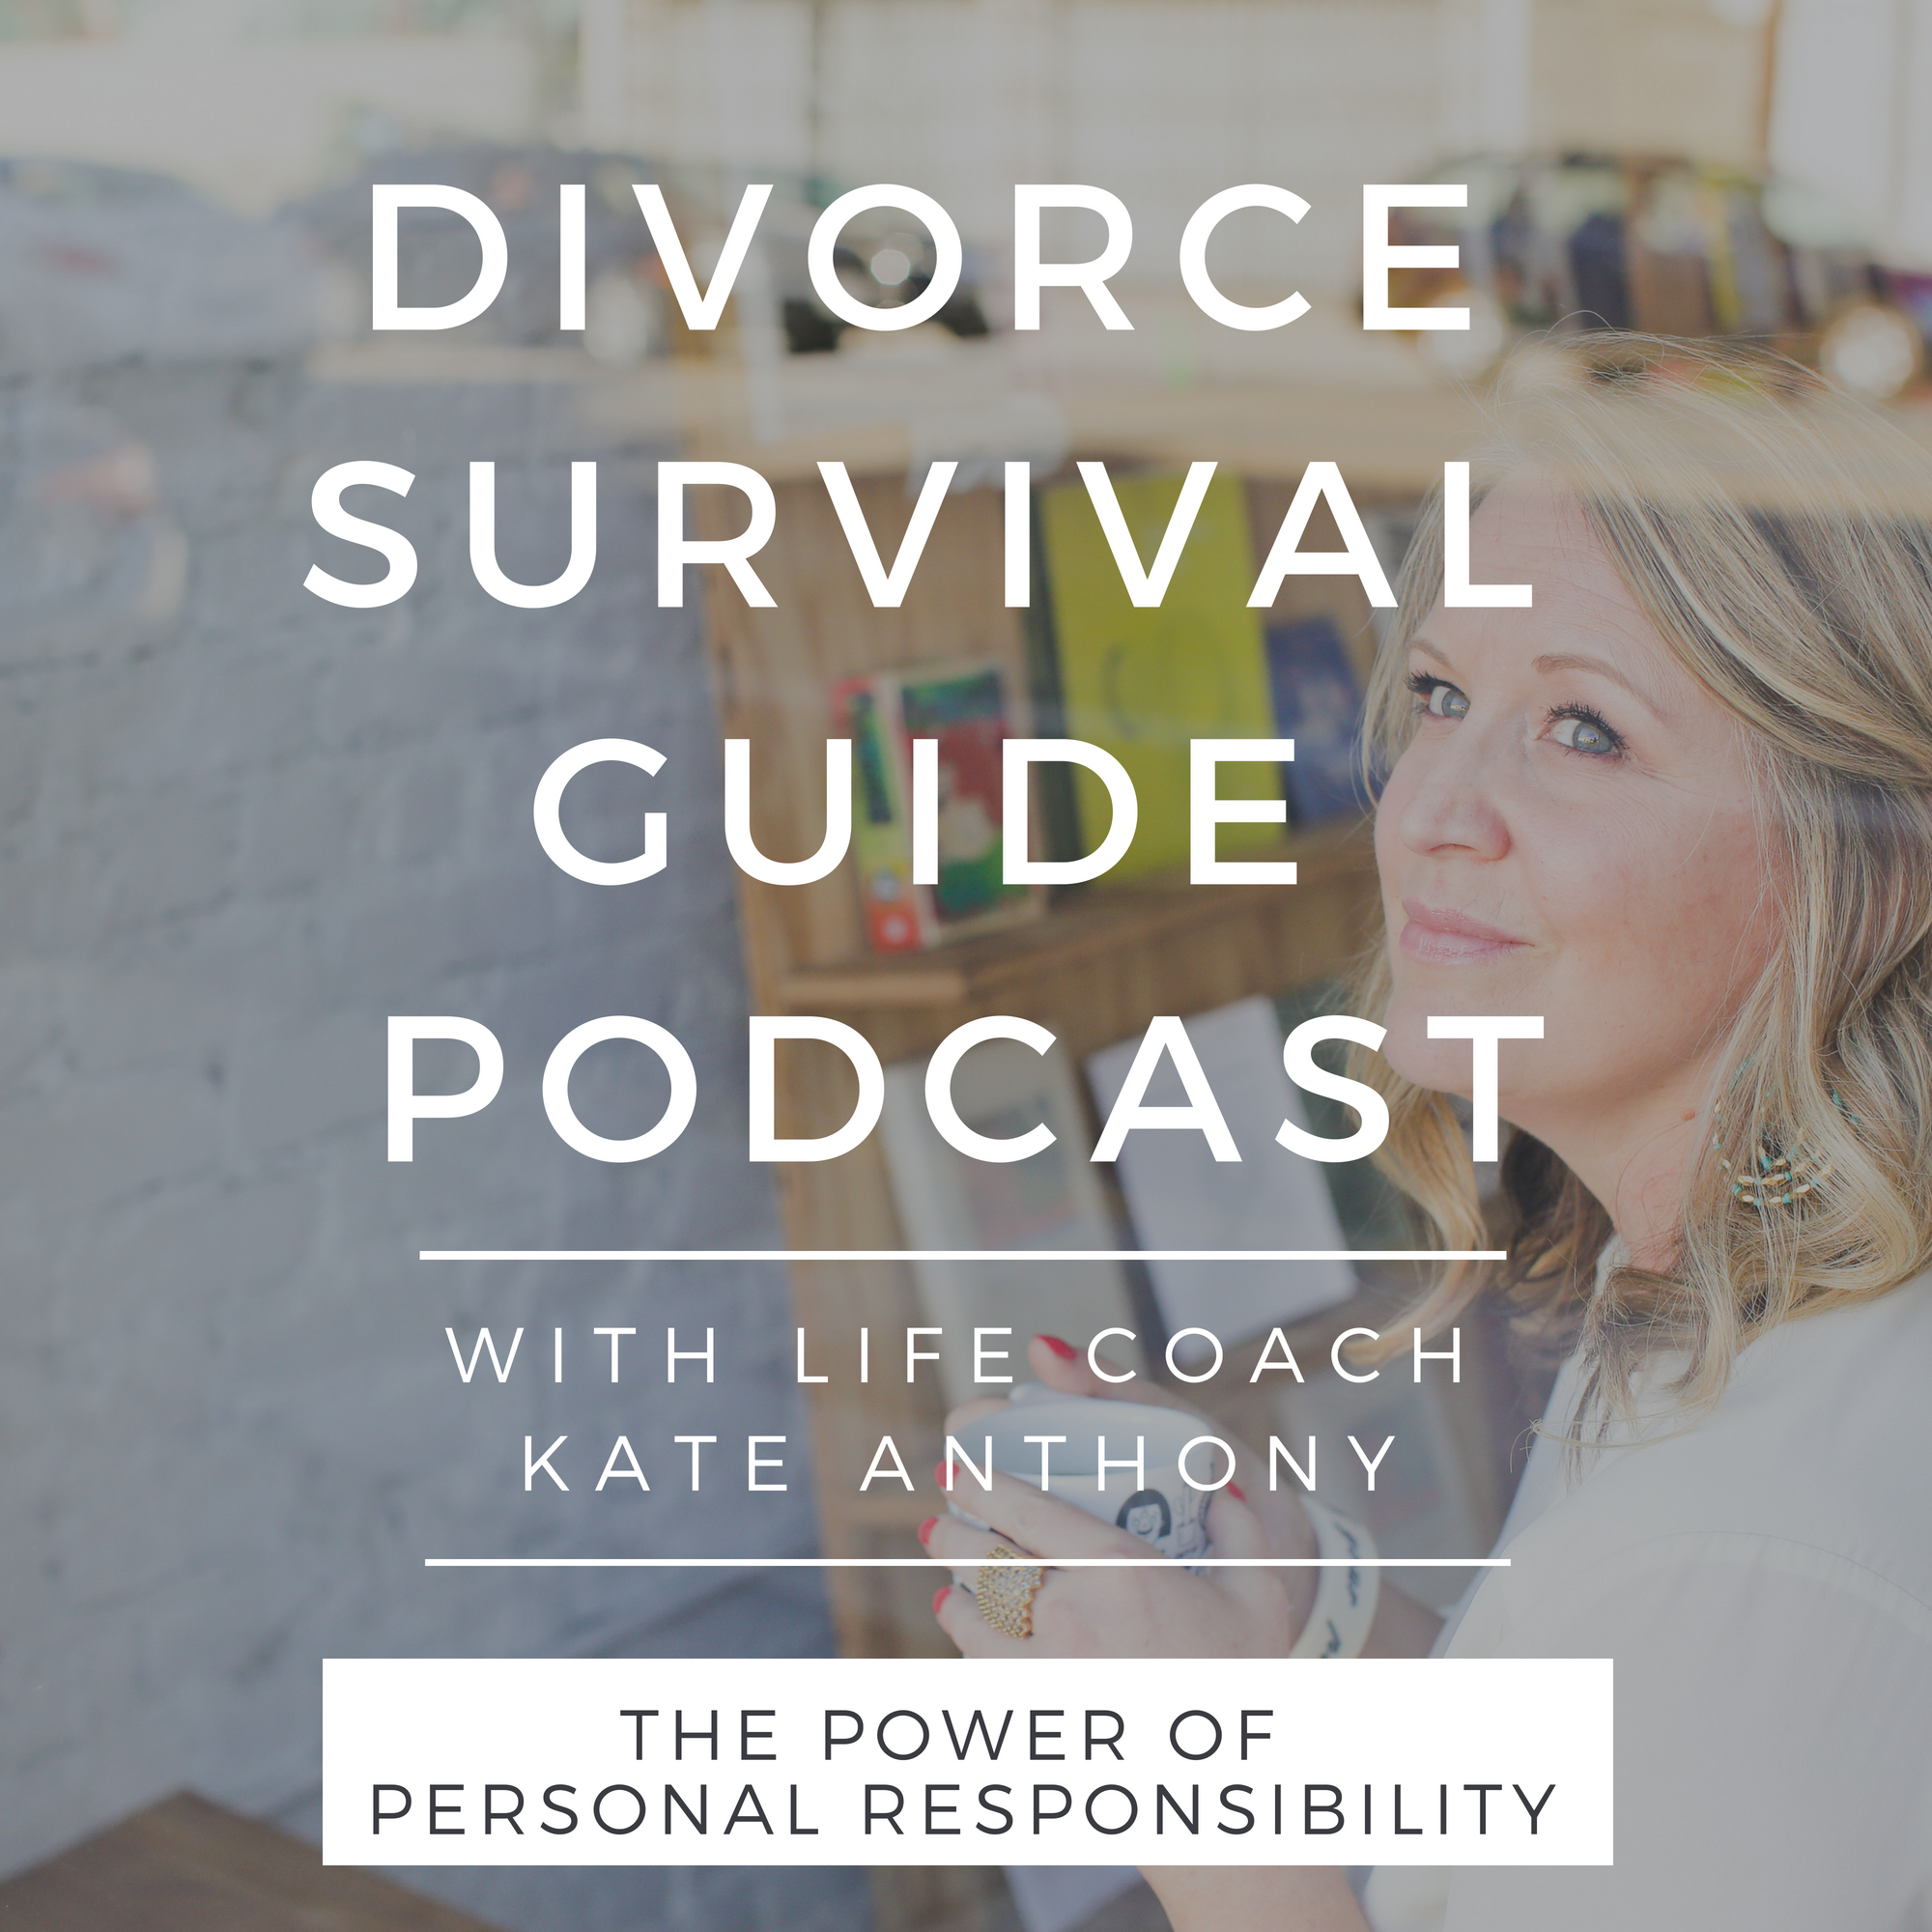 The Divorce Survival Guide Podcast - The Power of Personal Responsibility